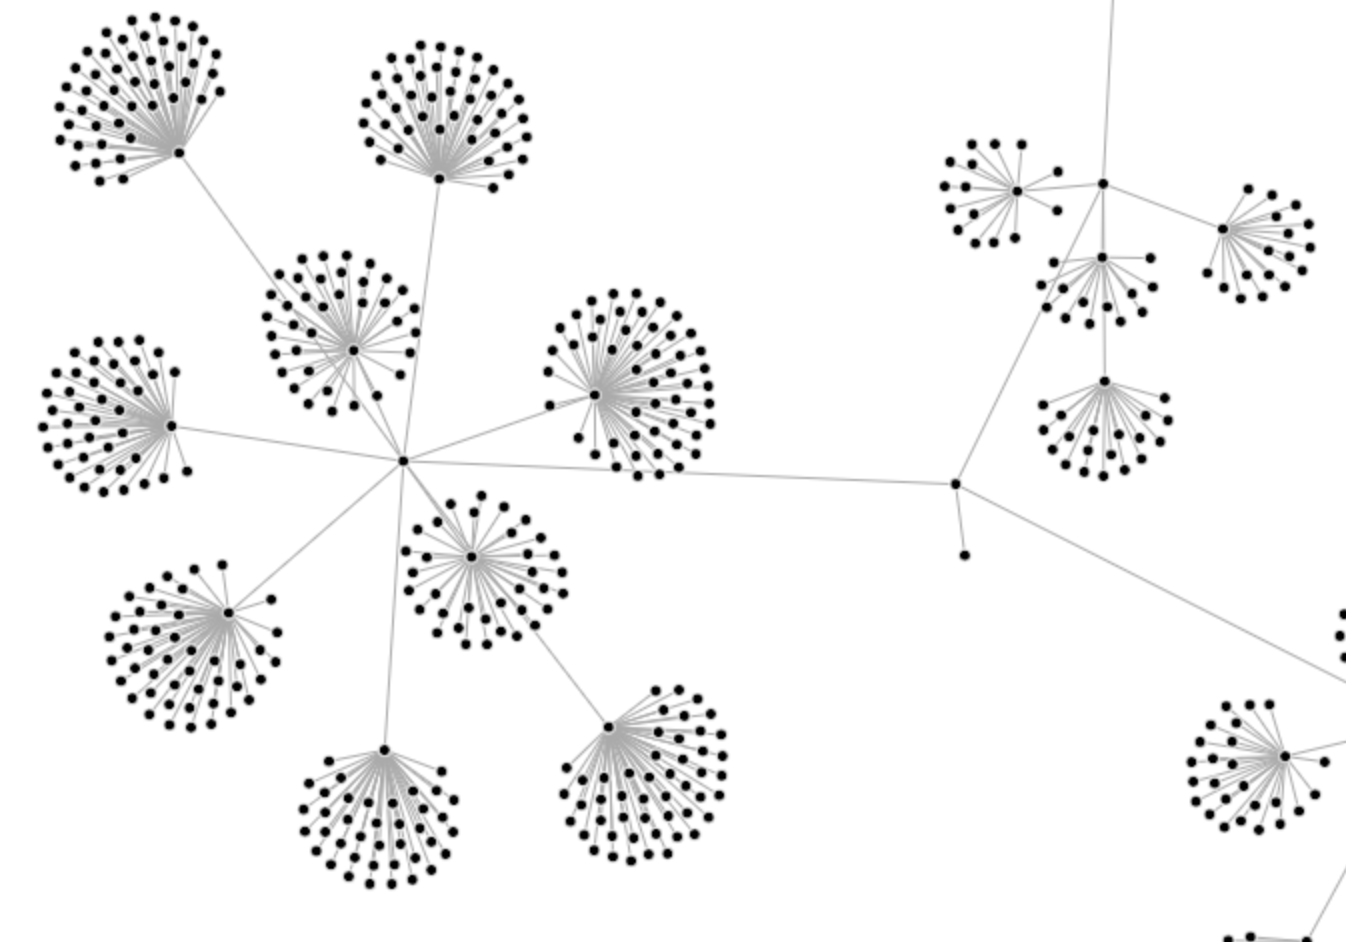 d3-force directed graph (forces experiments for dummies)